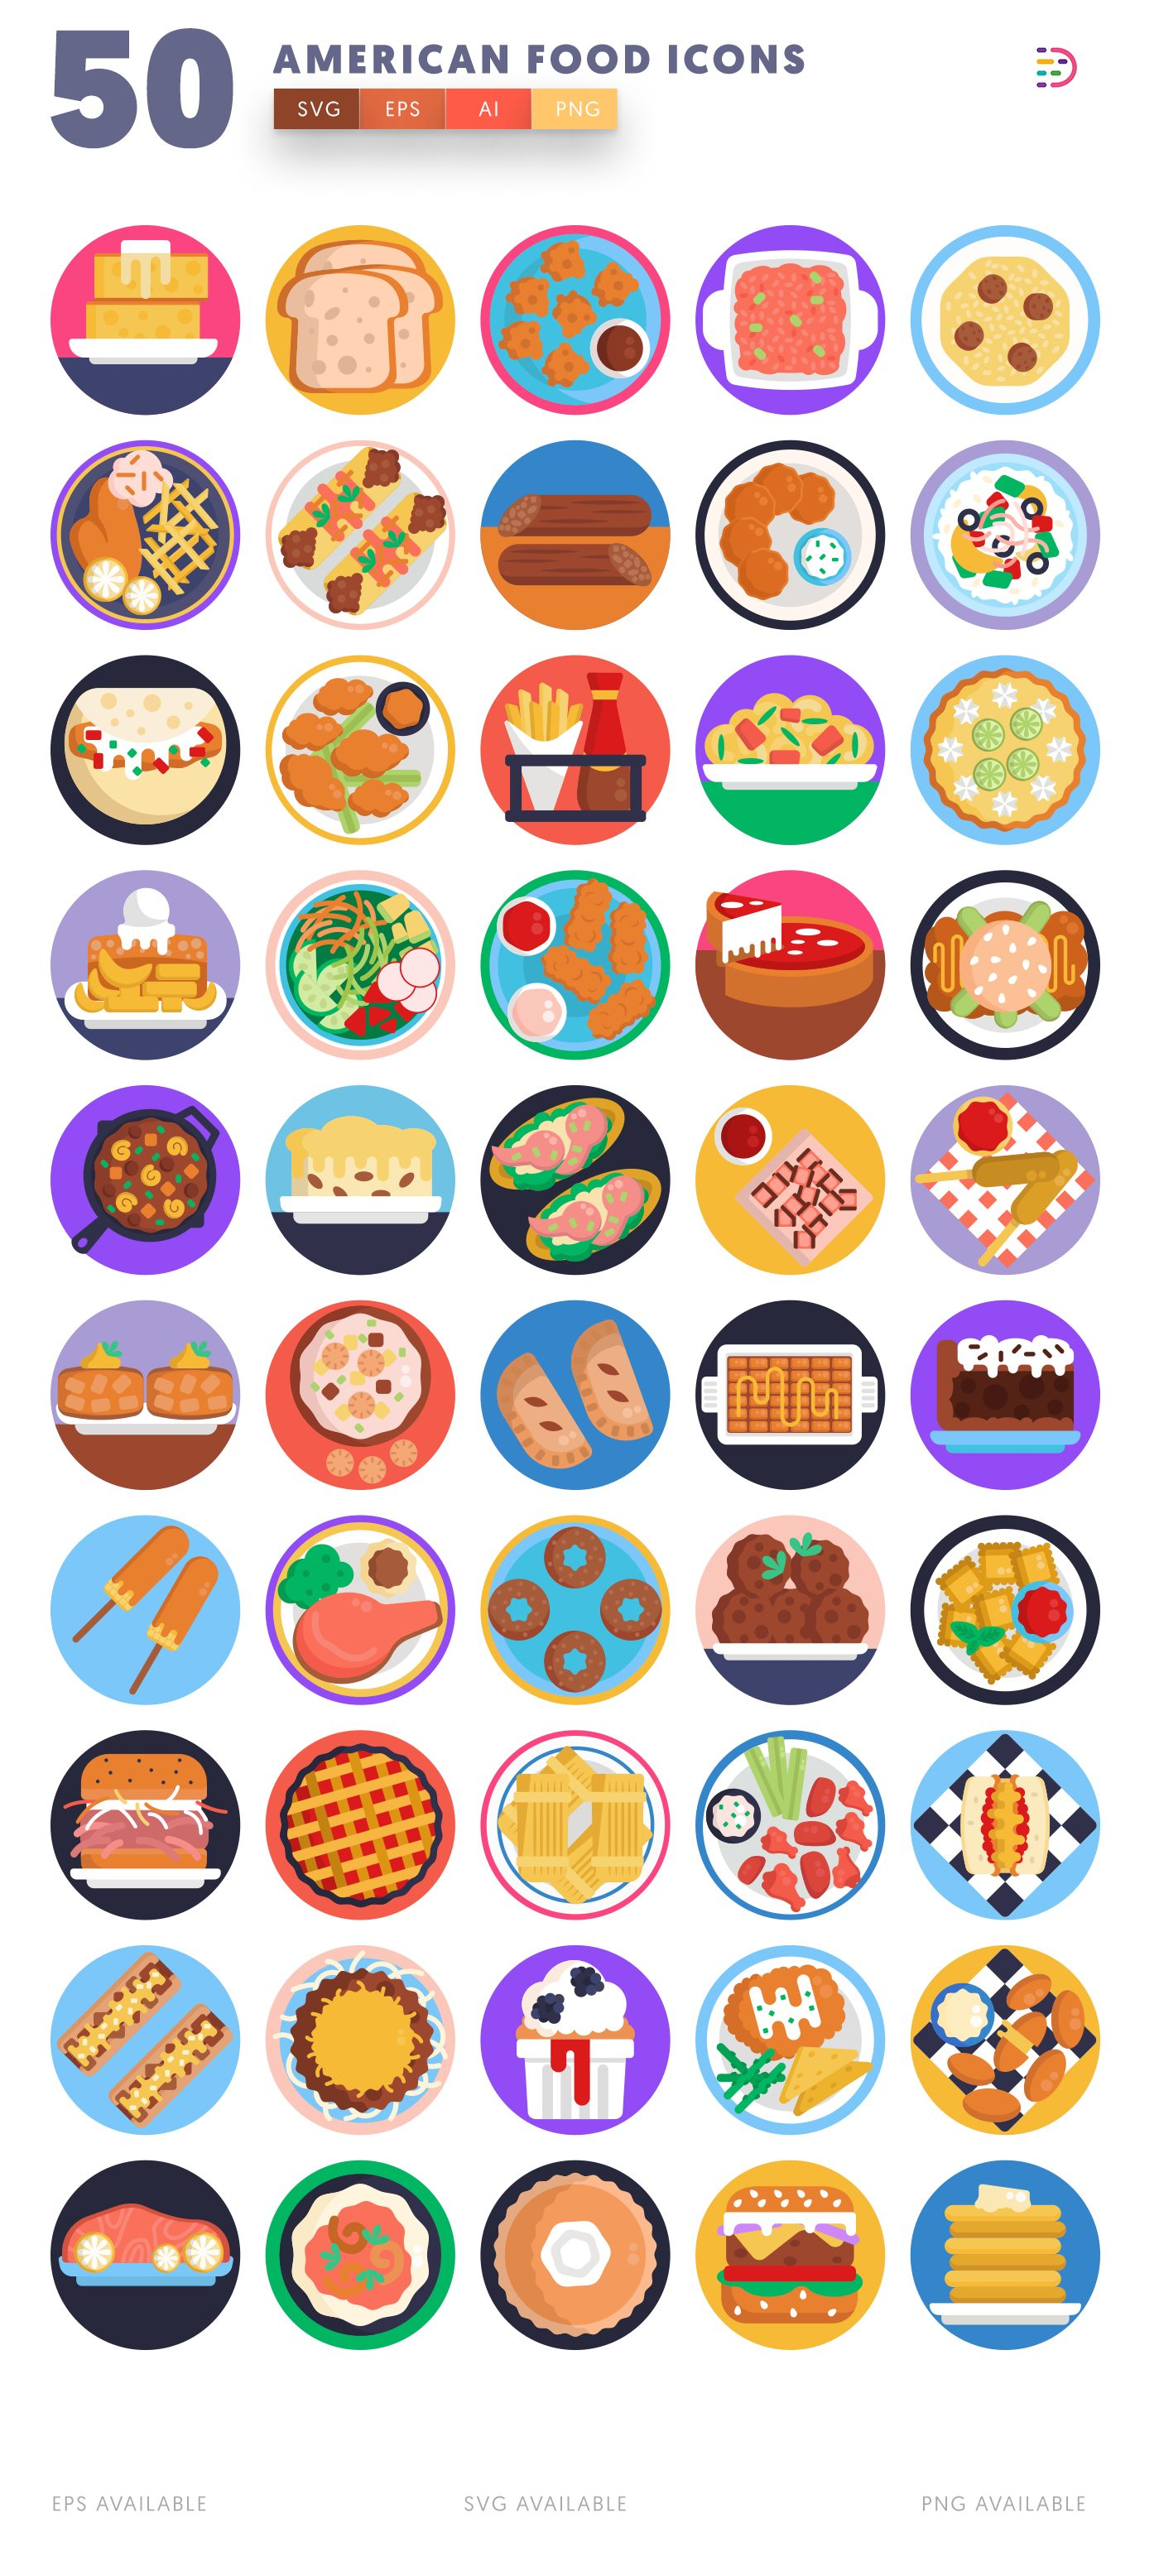 American Food icon pack